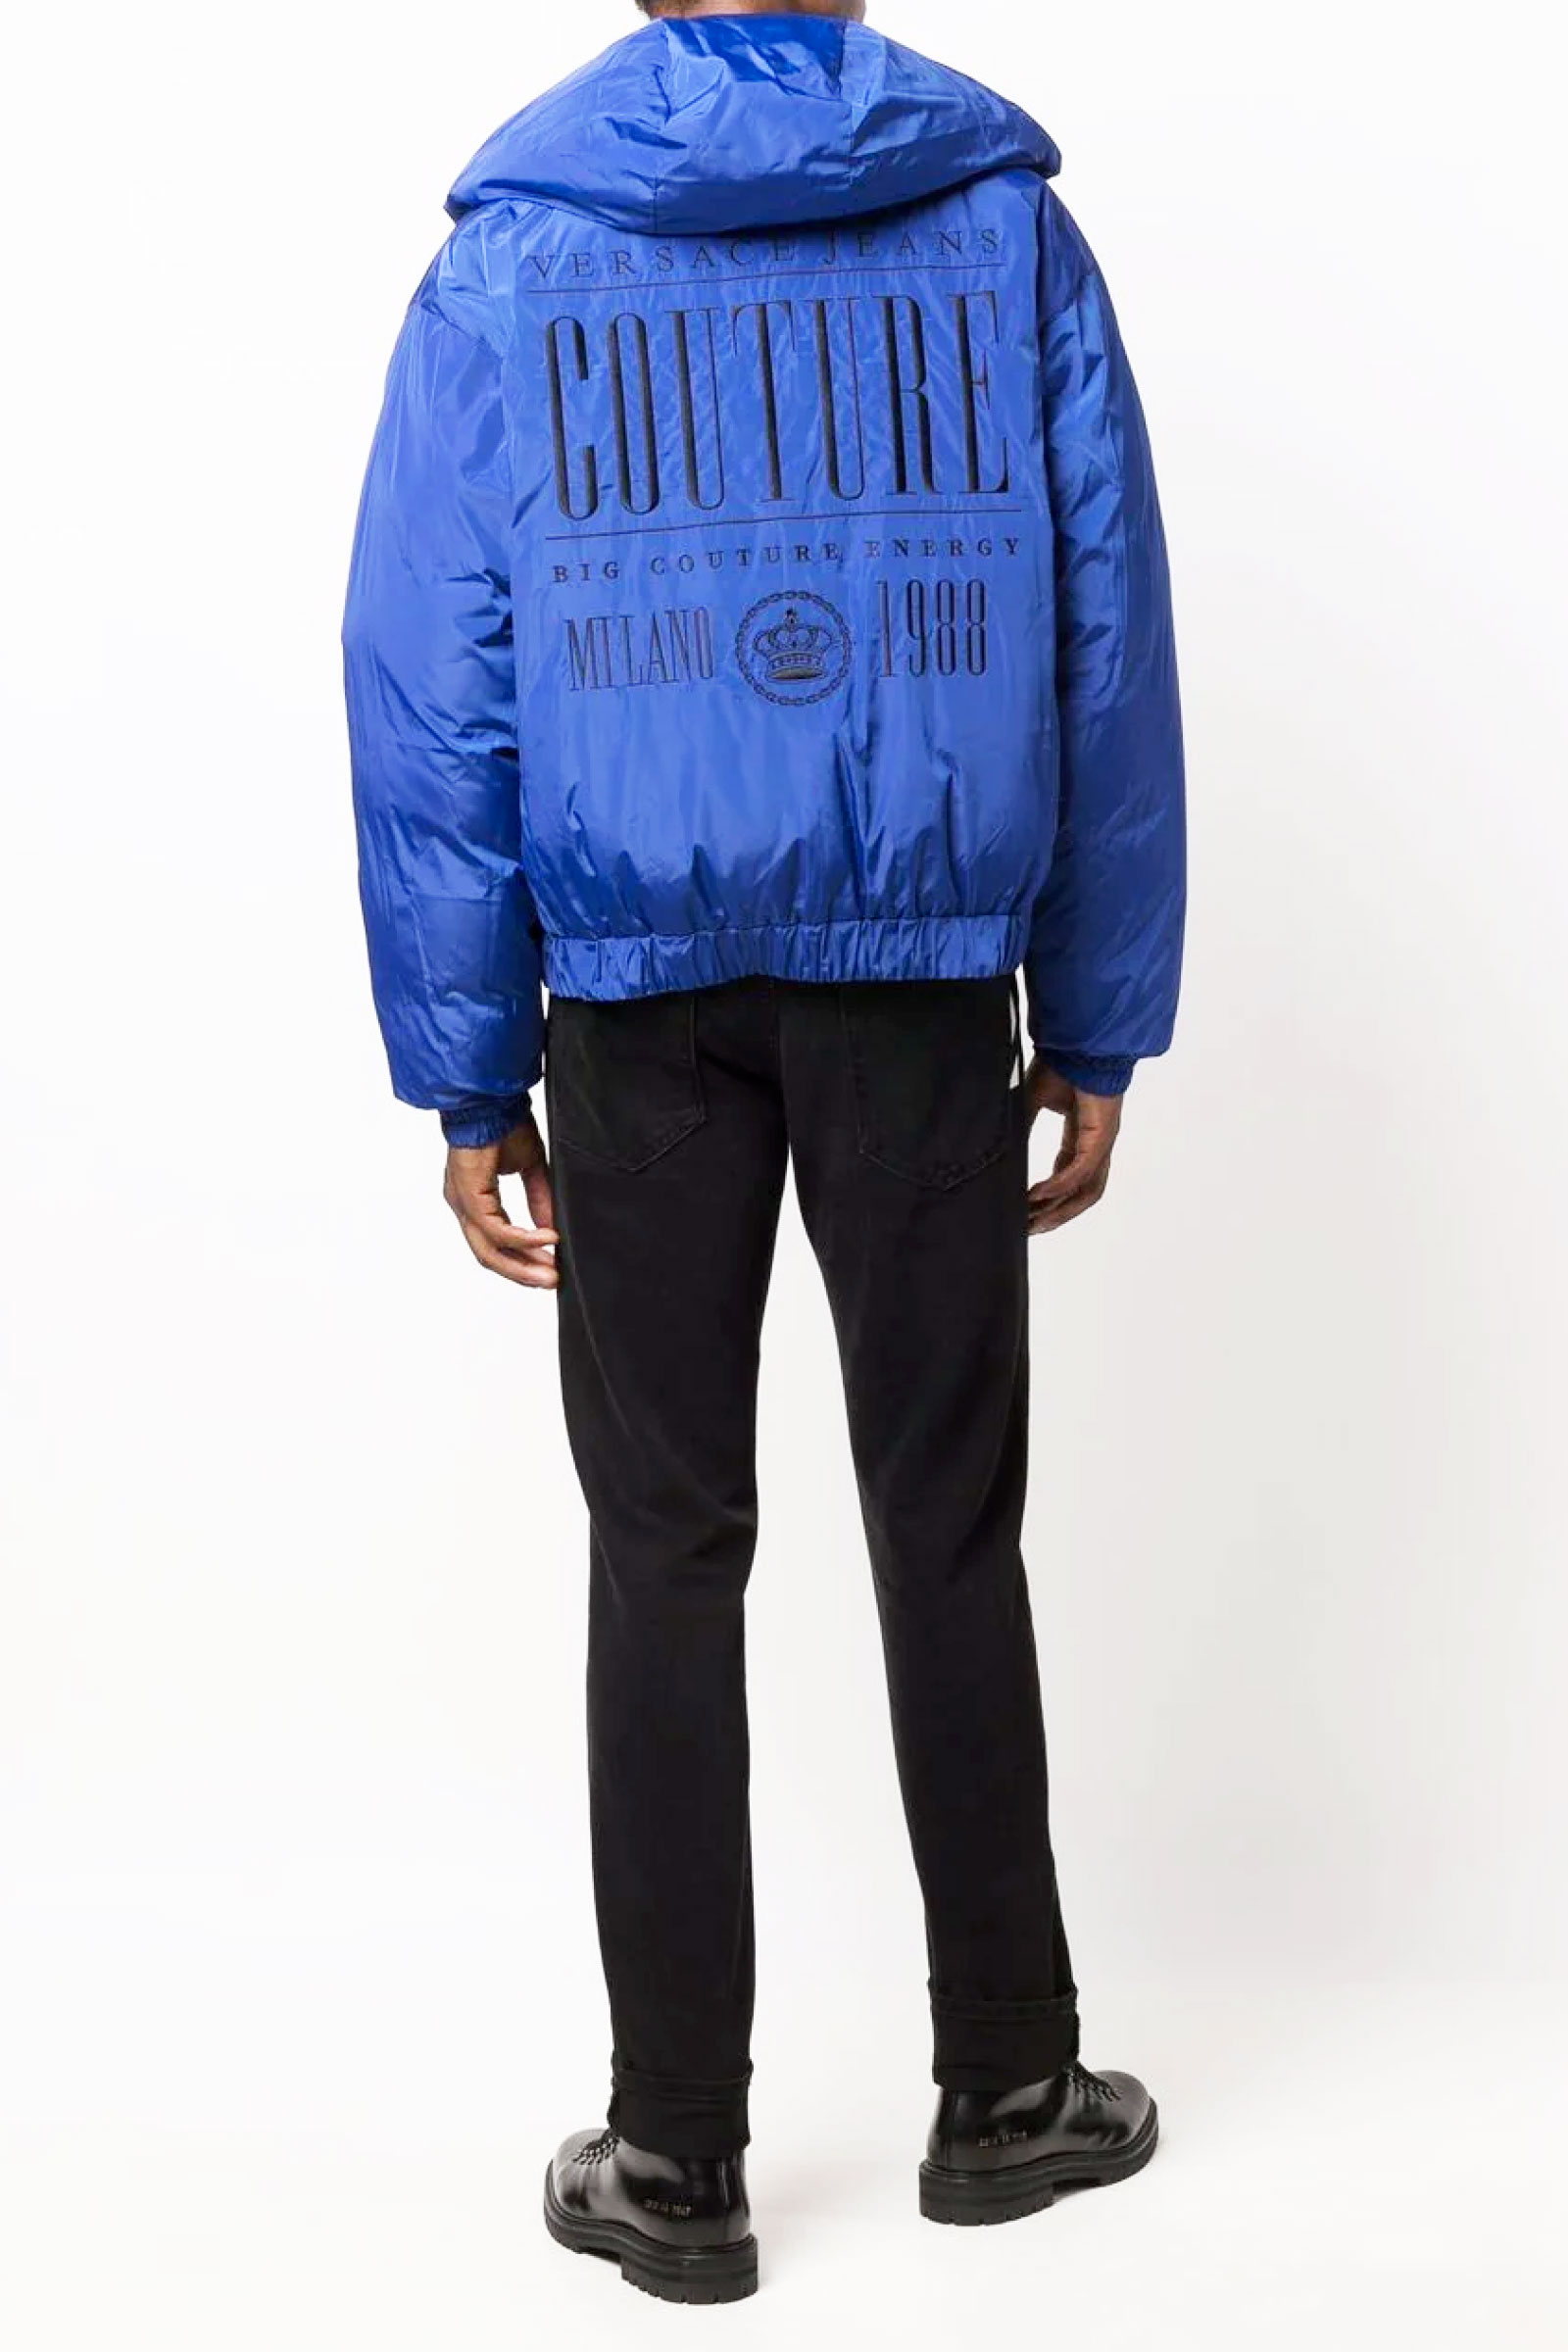 VERSACE JEANS COUTURE | Jacket | 71GAA422 CQS06G42